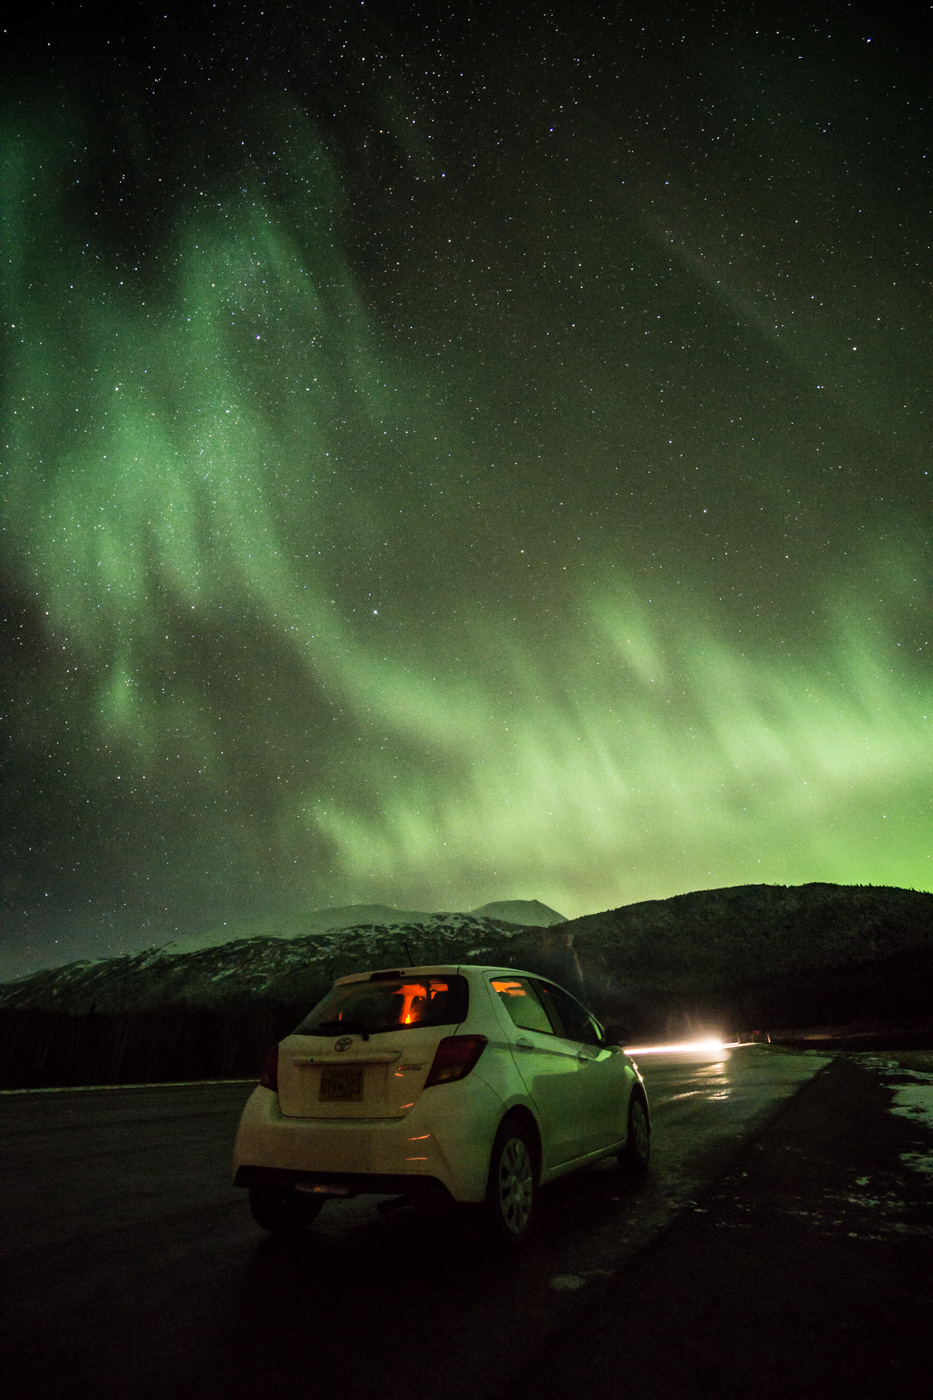 Sony a6000, Aurora and Yaris, 15s, f/4, ISO 1600